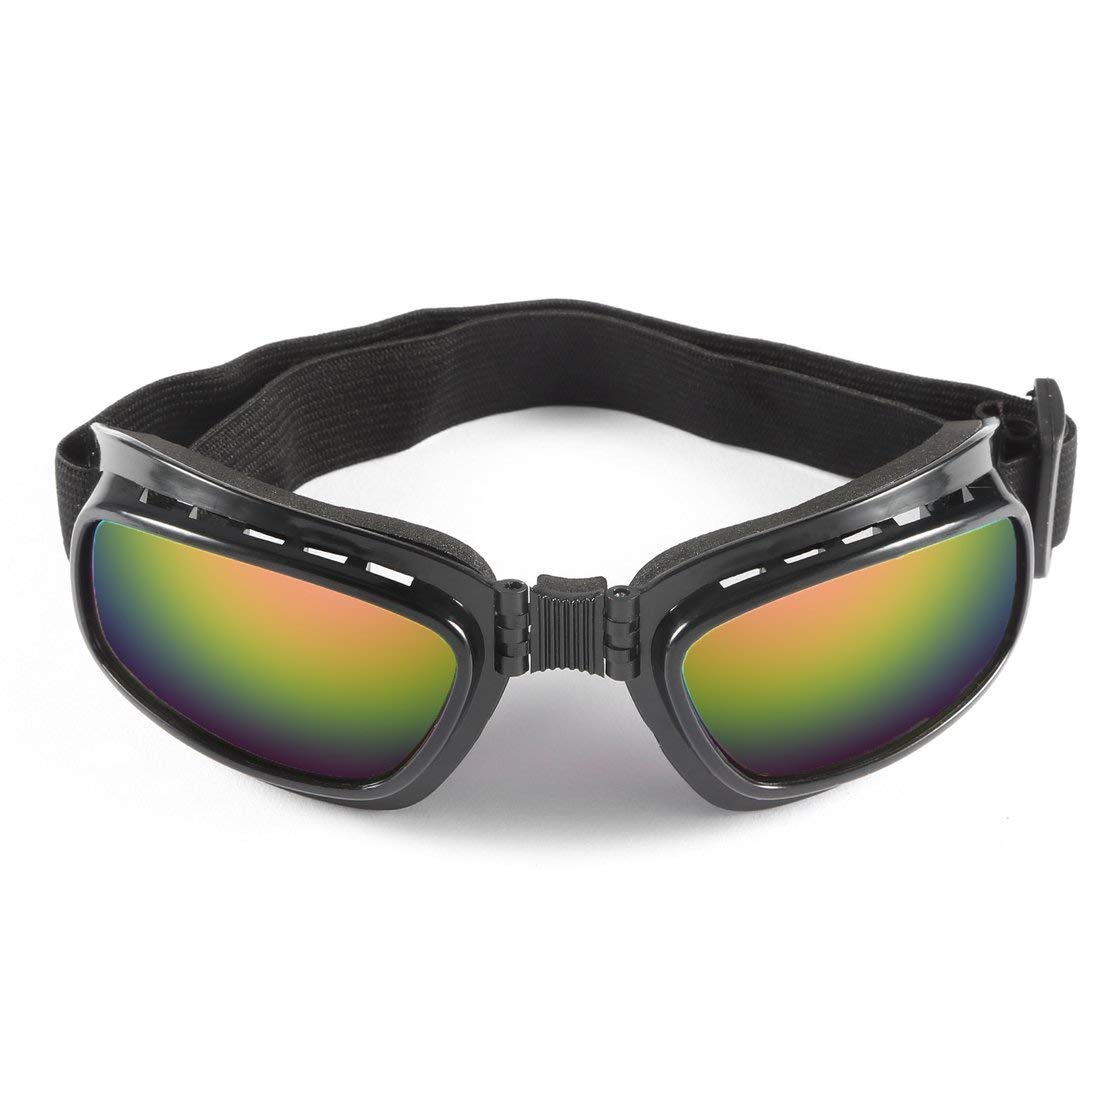 Baynne Folding Motorcycle Glasses Windproof Ski Goggles Off Road Racing Eyewear(Color:Black Frame and Colorful Lens)